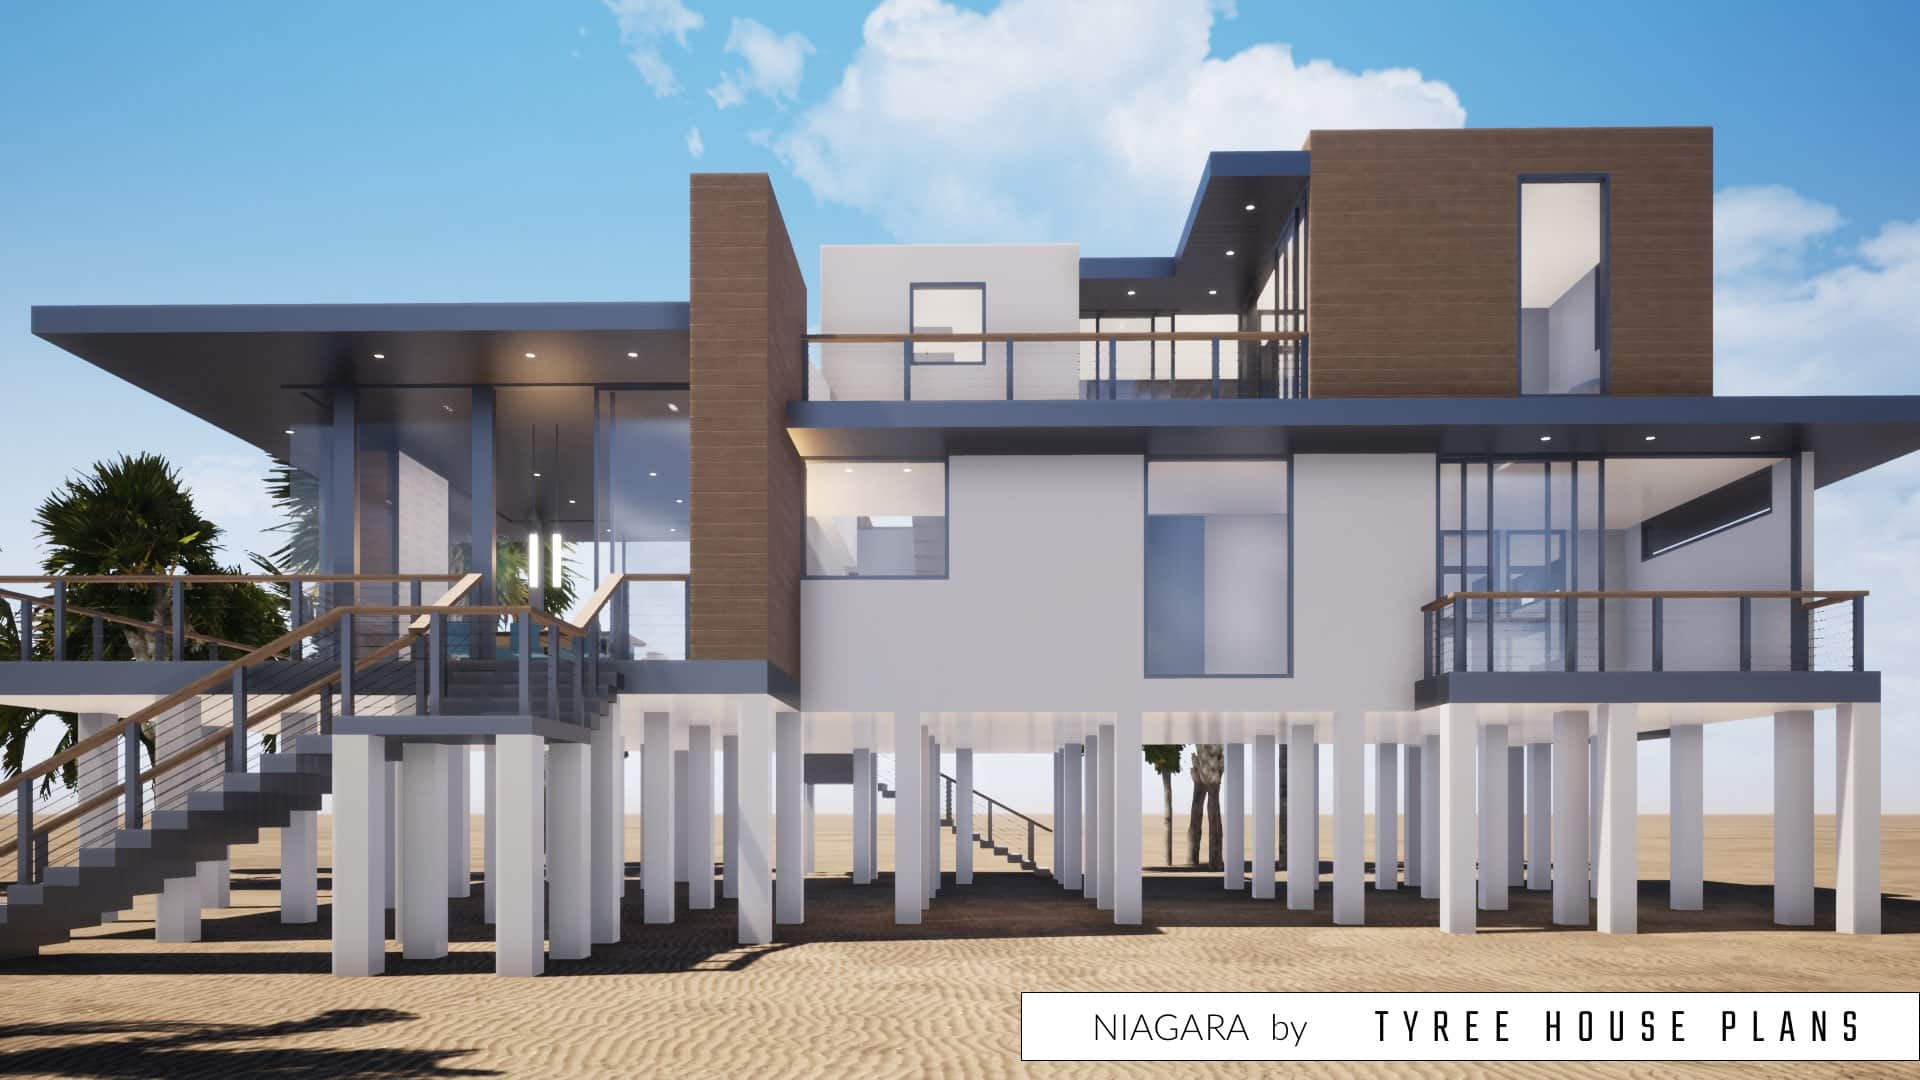 Niagara House Plan by Tyree House Plans